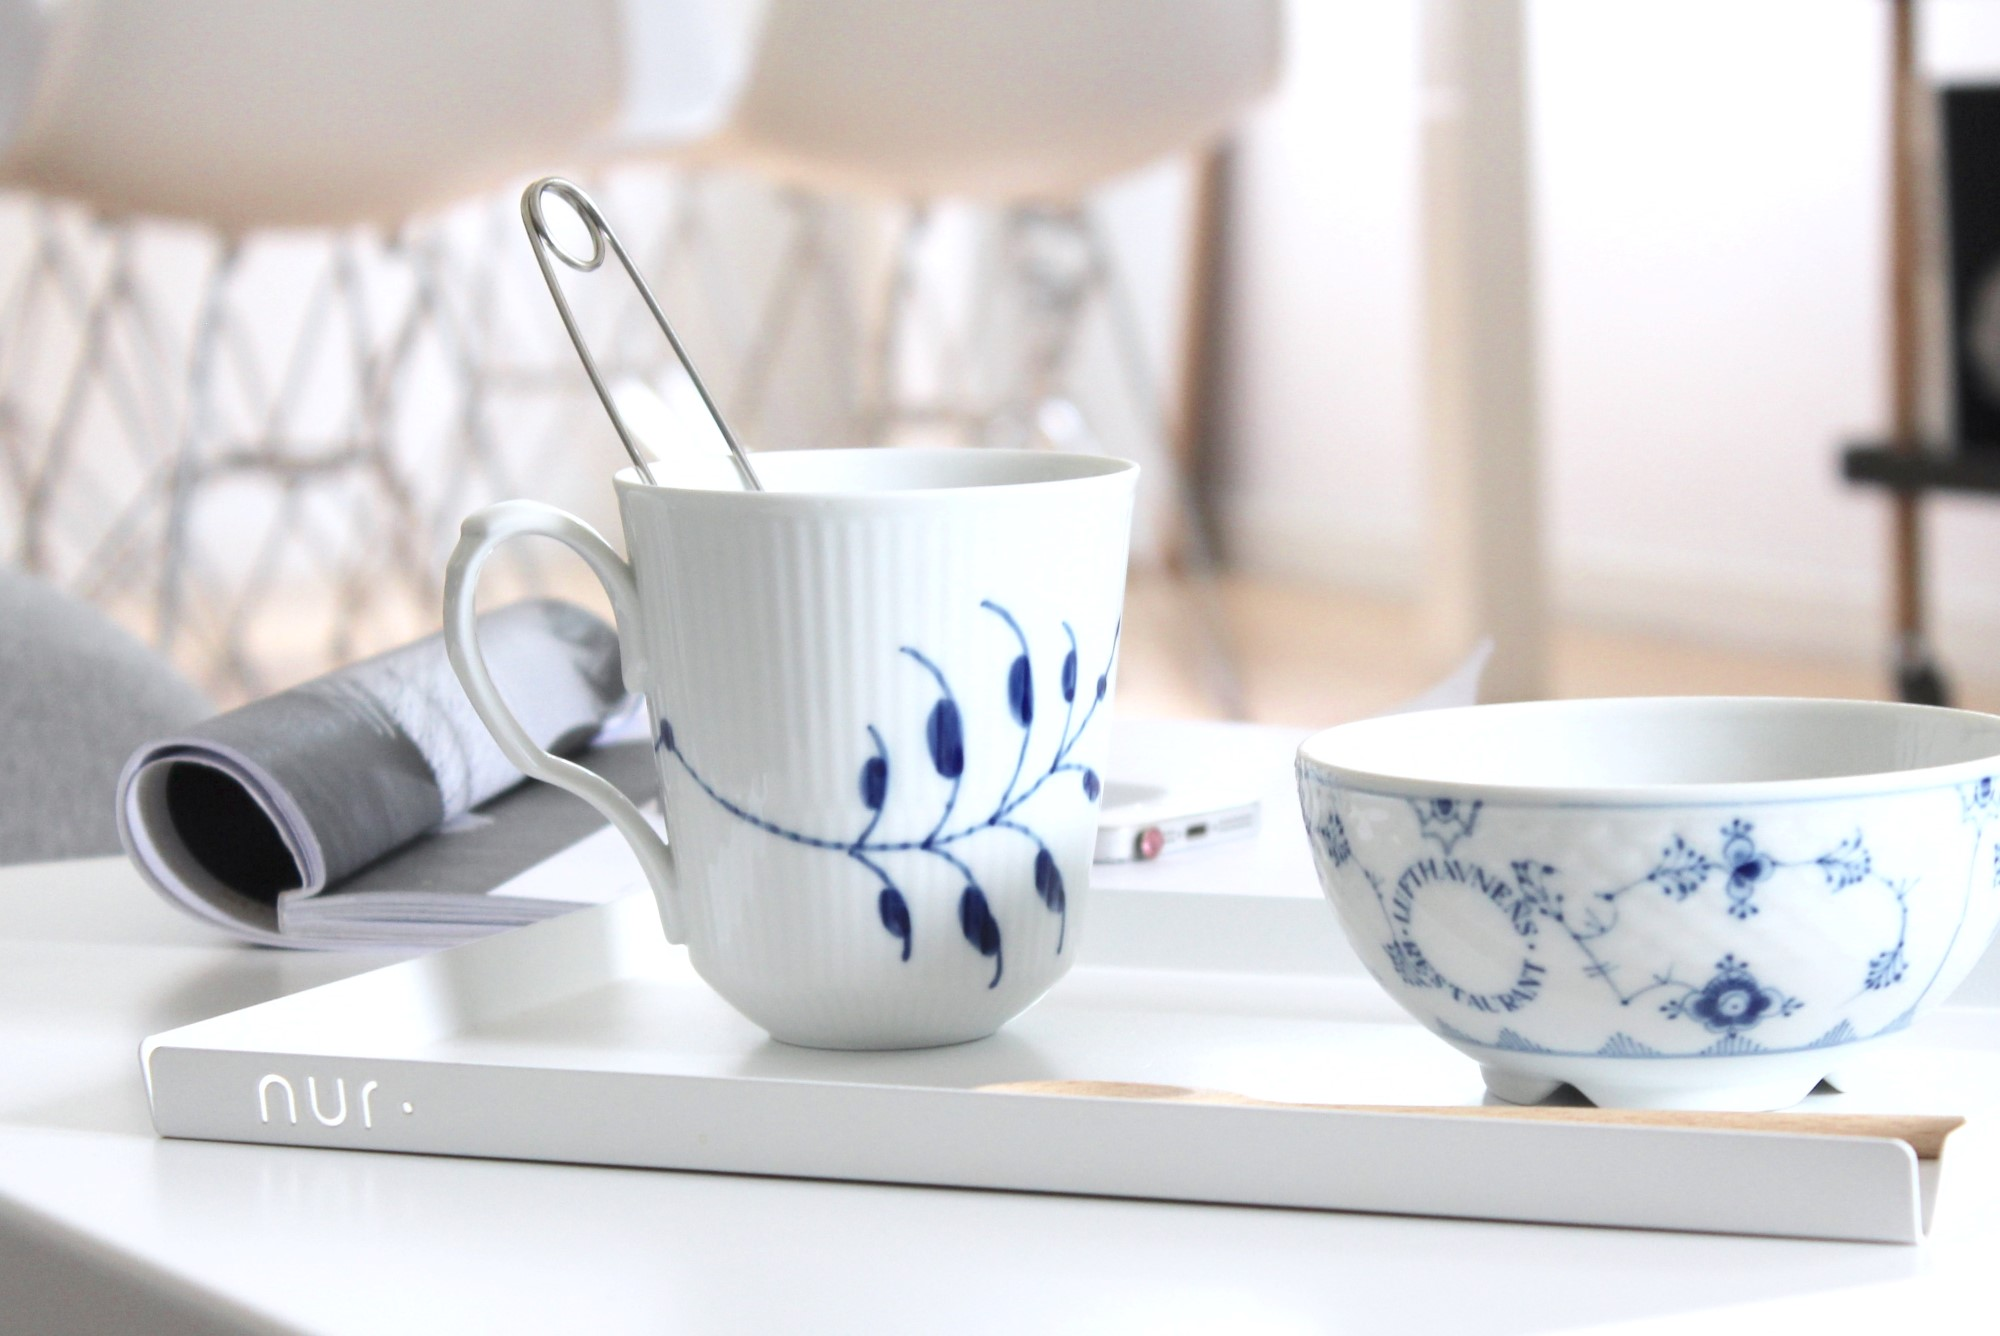 Serving tray for tea from Nur Design